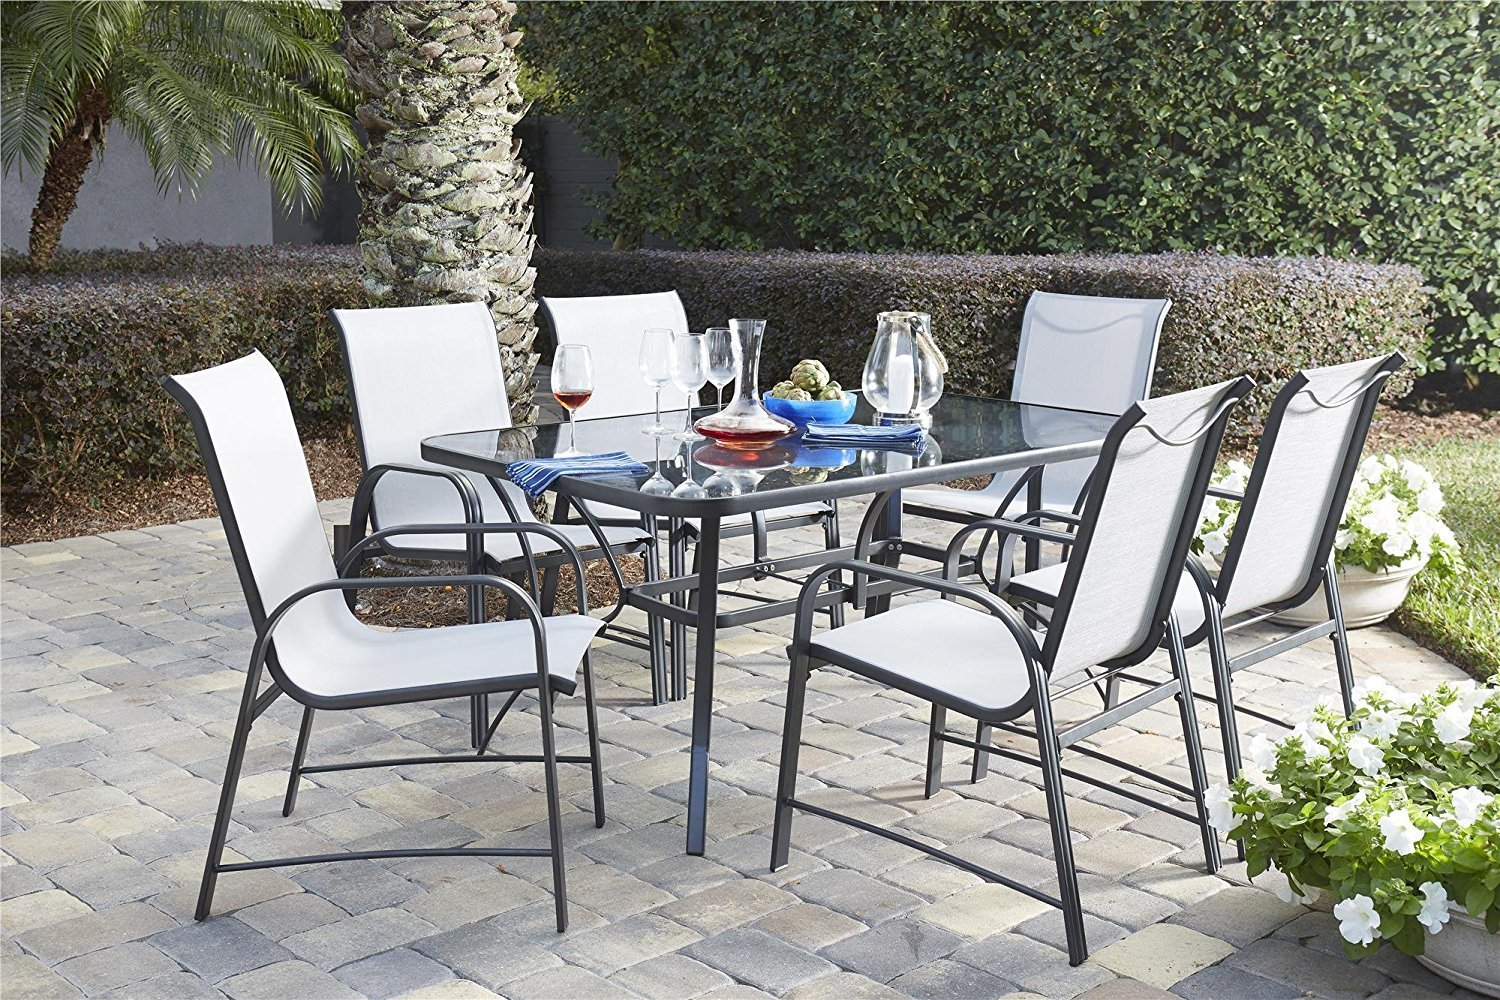 COSCO 88647GLGE Outdoor Living 7 Piece Paloma Steel Patio Dining Set, Light/Dark Gray by Cosco Outdoor Living (Image #16)